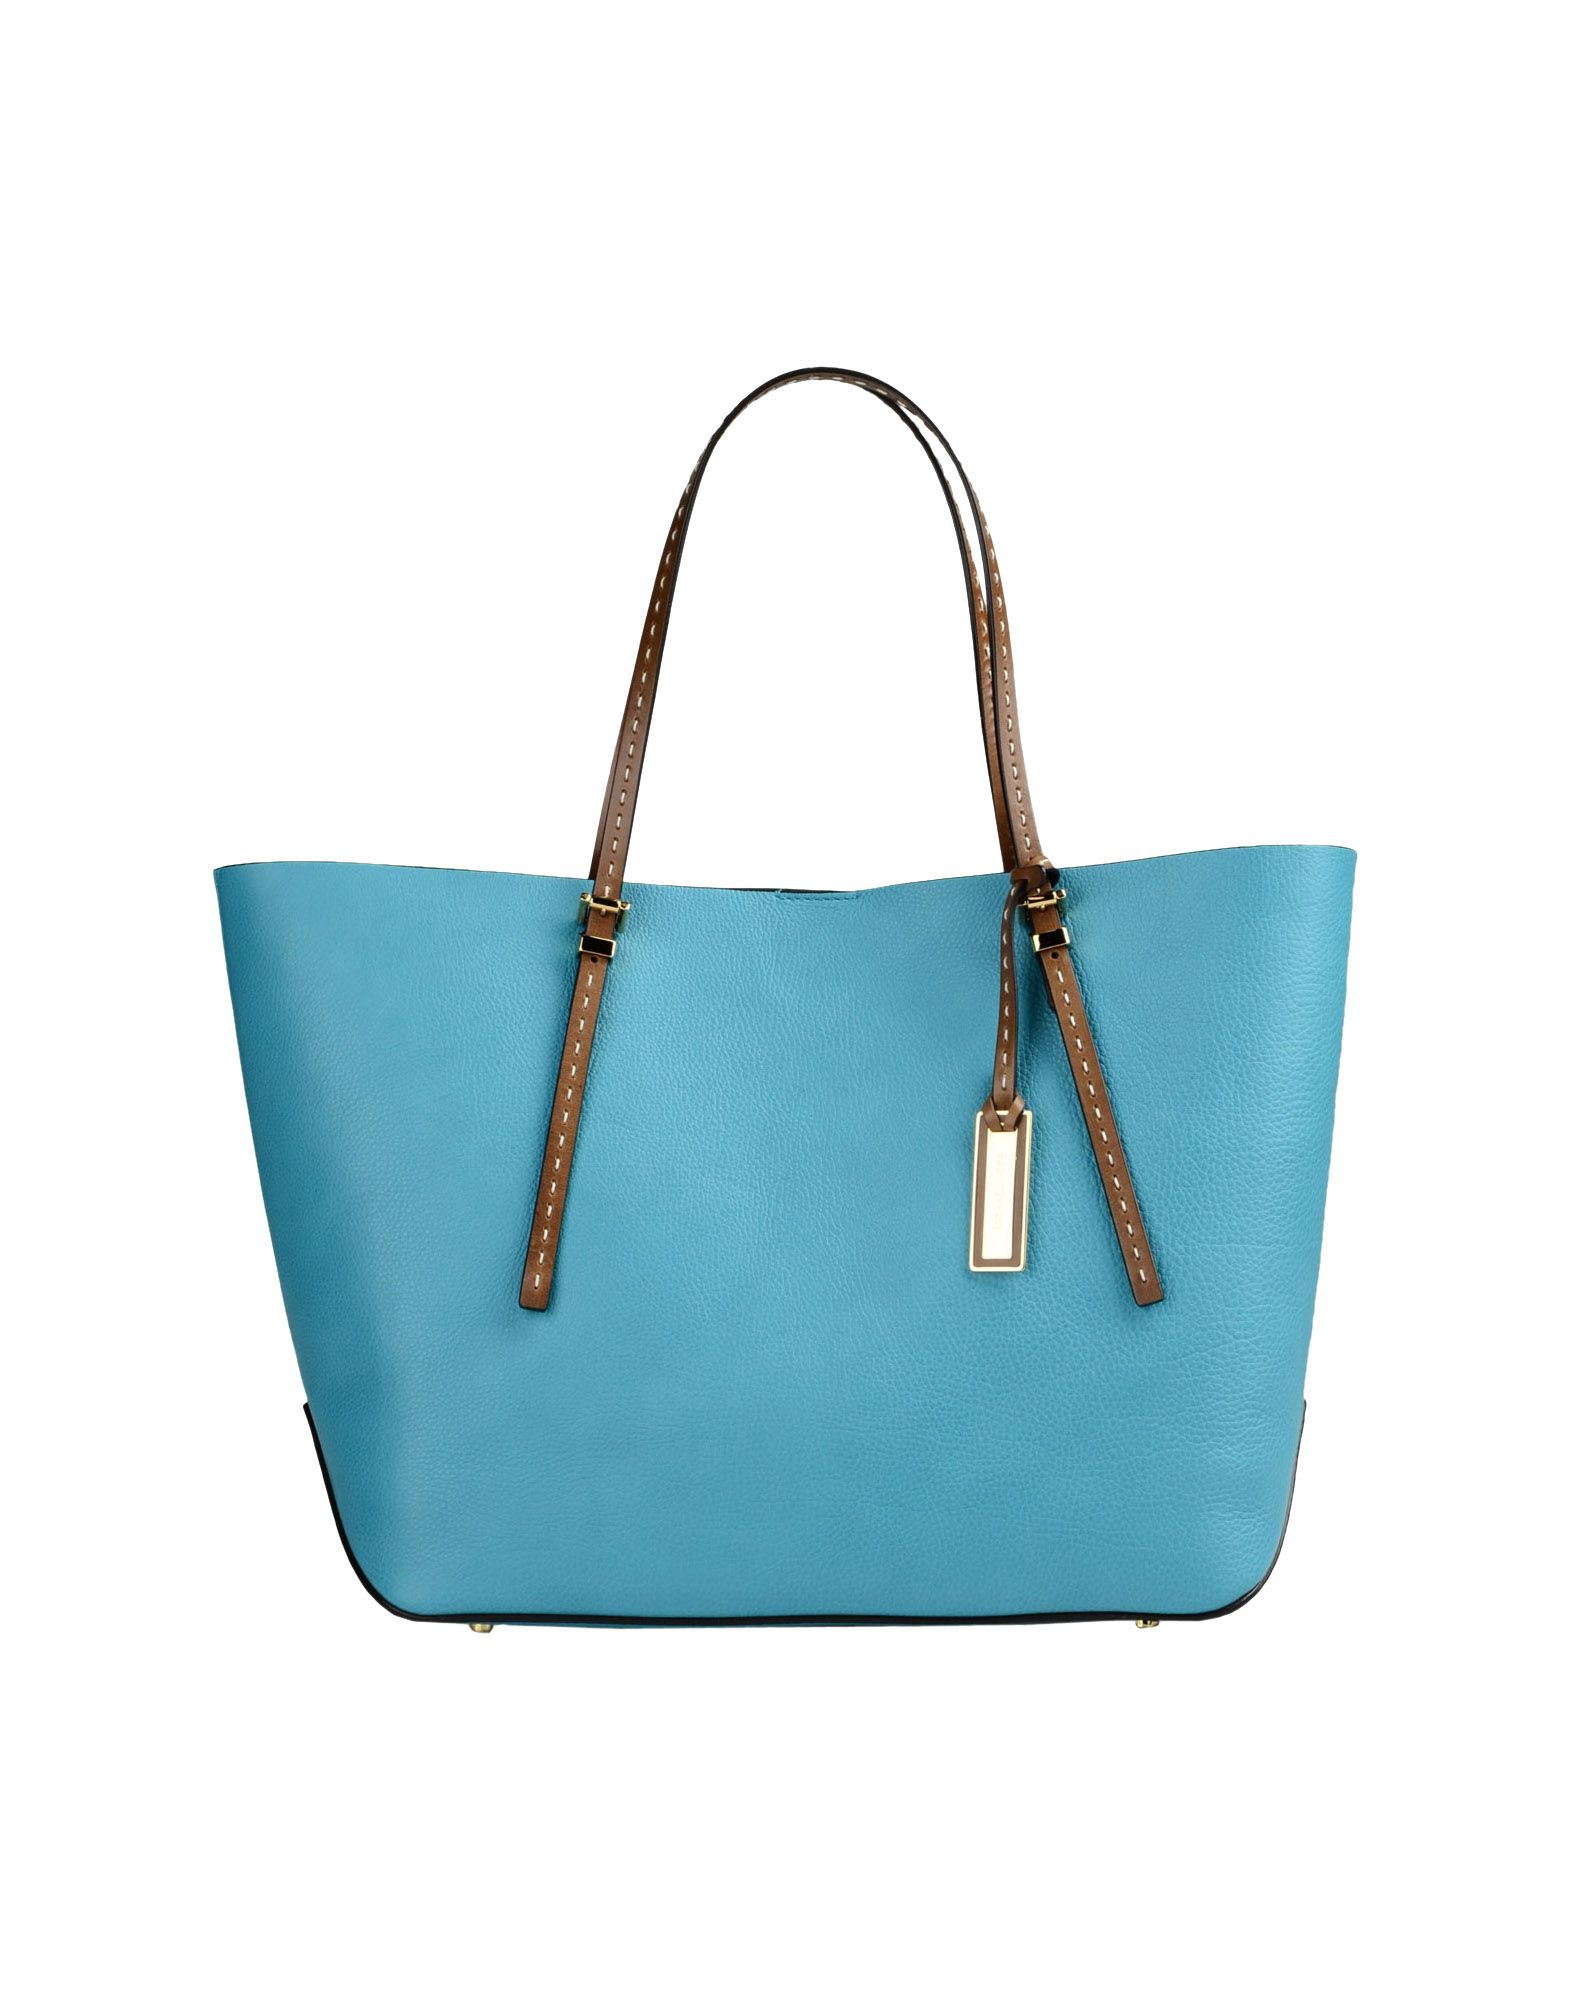 michael kors large leather bags in blue turquoise lyst